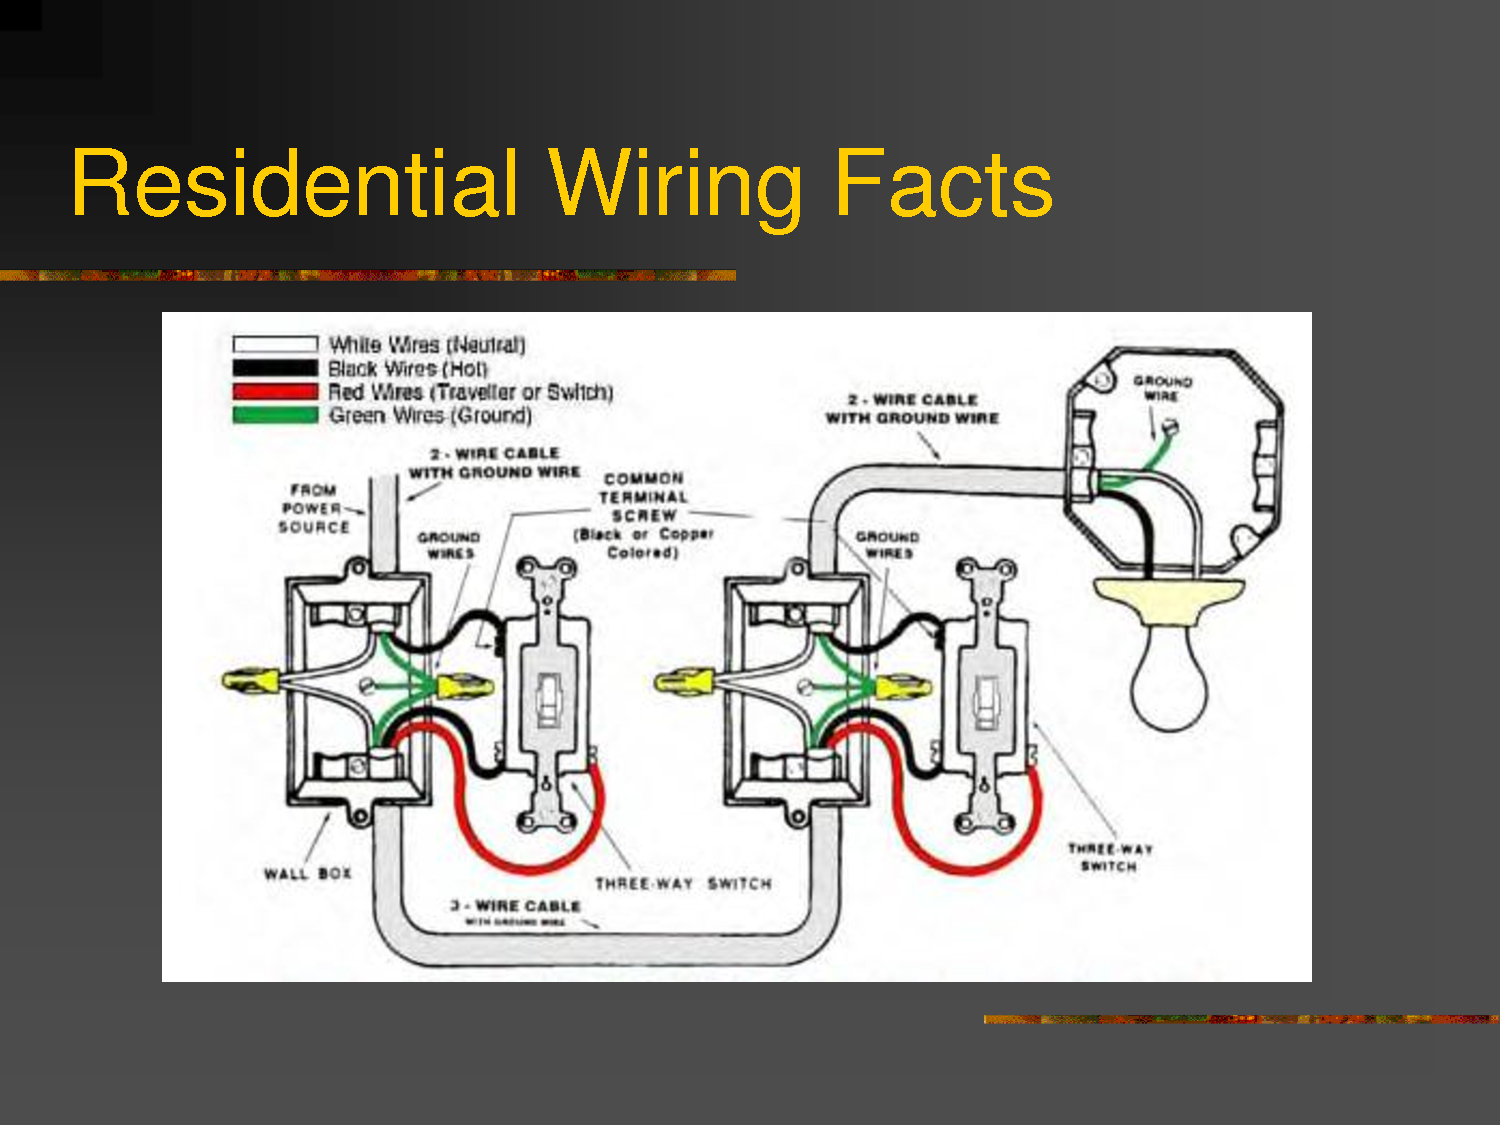 4 Best Images Of Residential Wiring Diagrams - House Electrical - Residential Wiring Diagram